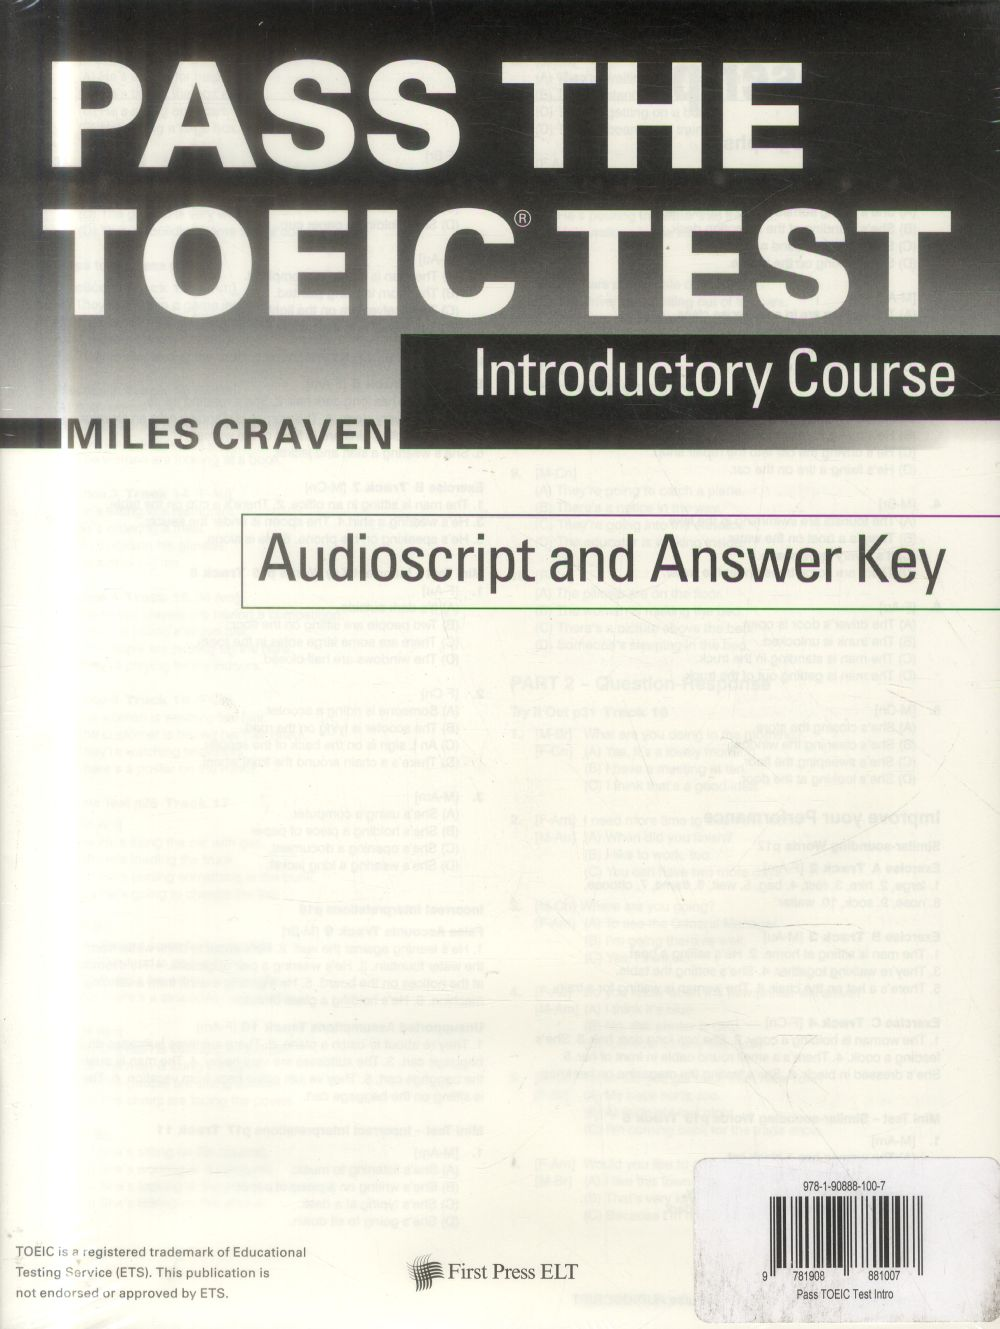 Pass the TOIEC test ; introductory course with complete audio program answer key and audioscript